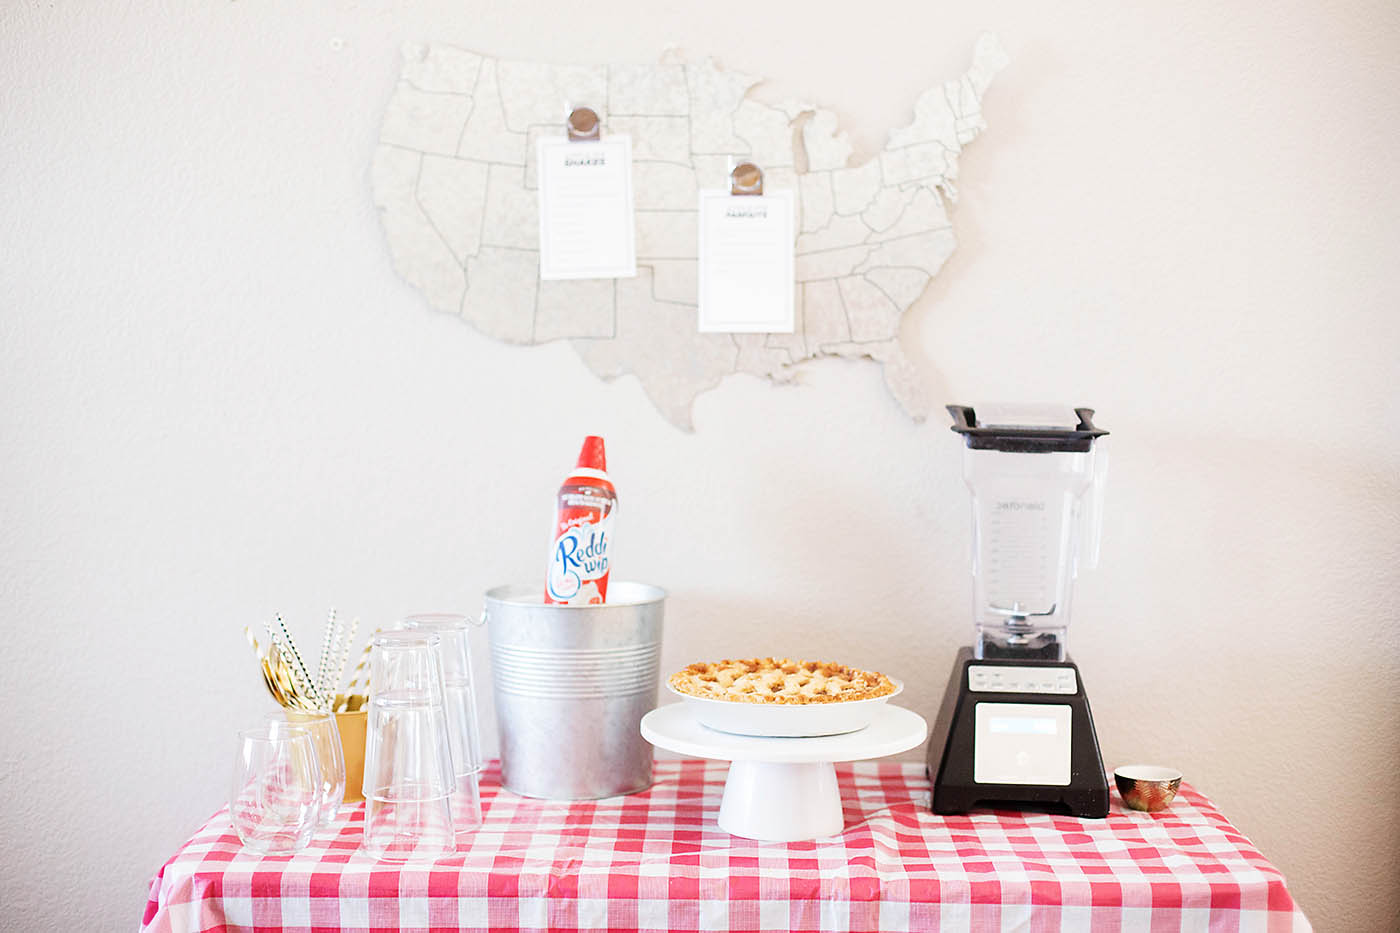 Picnic party with apple pie shakes - perfect for summer!